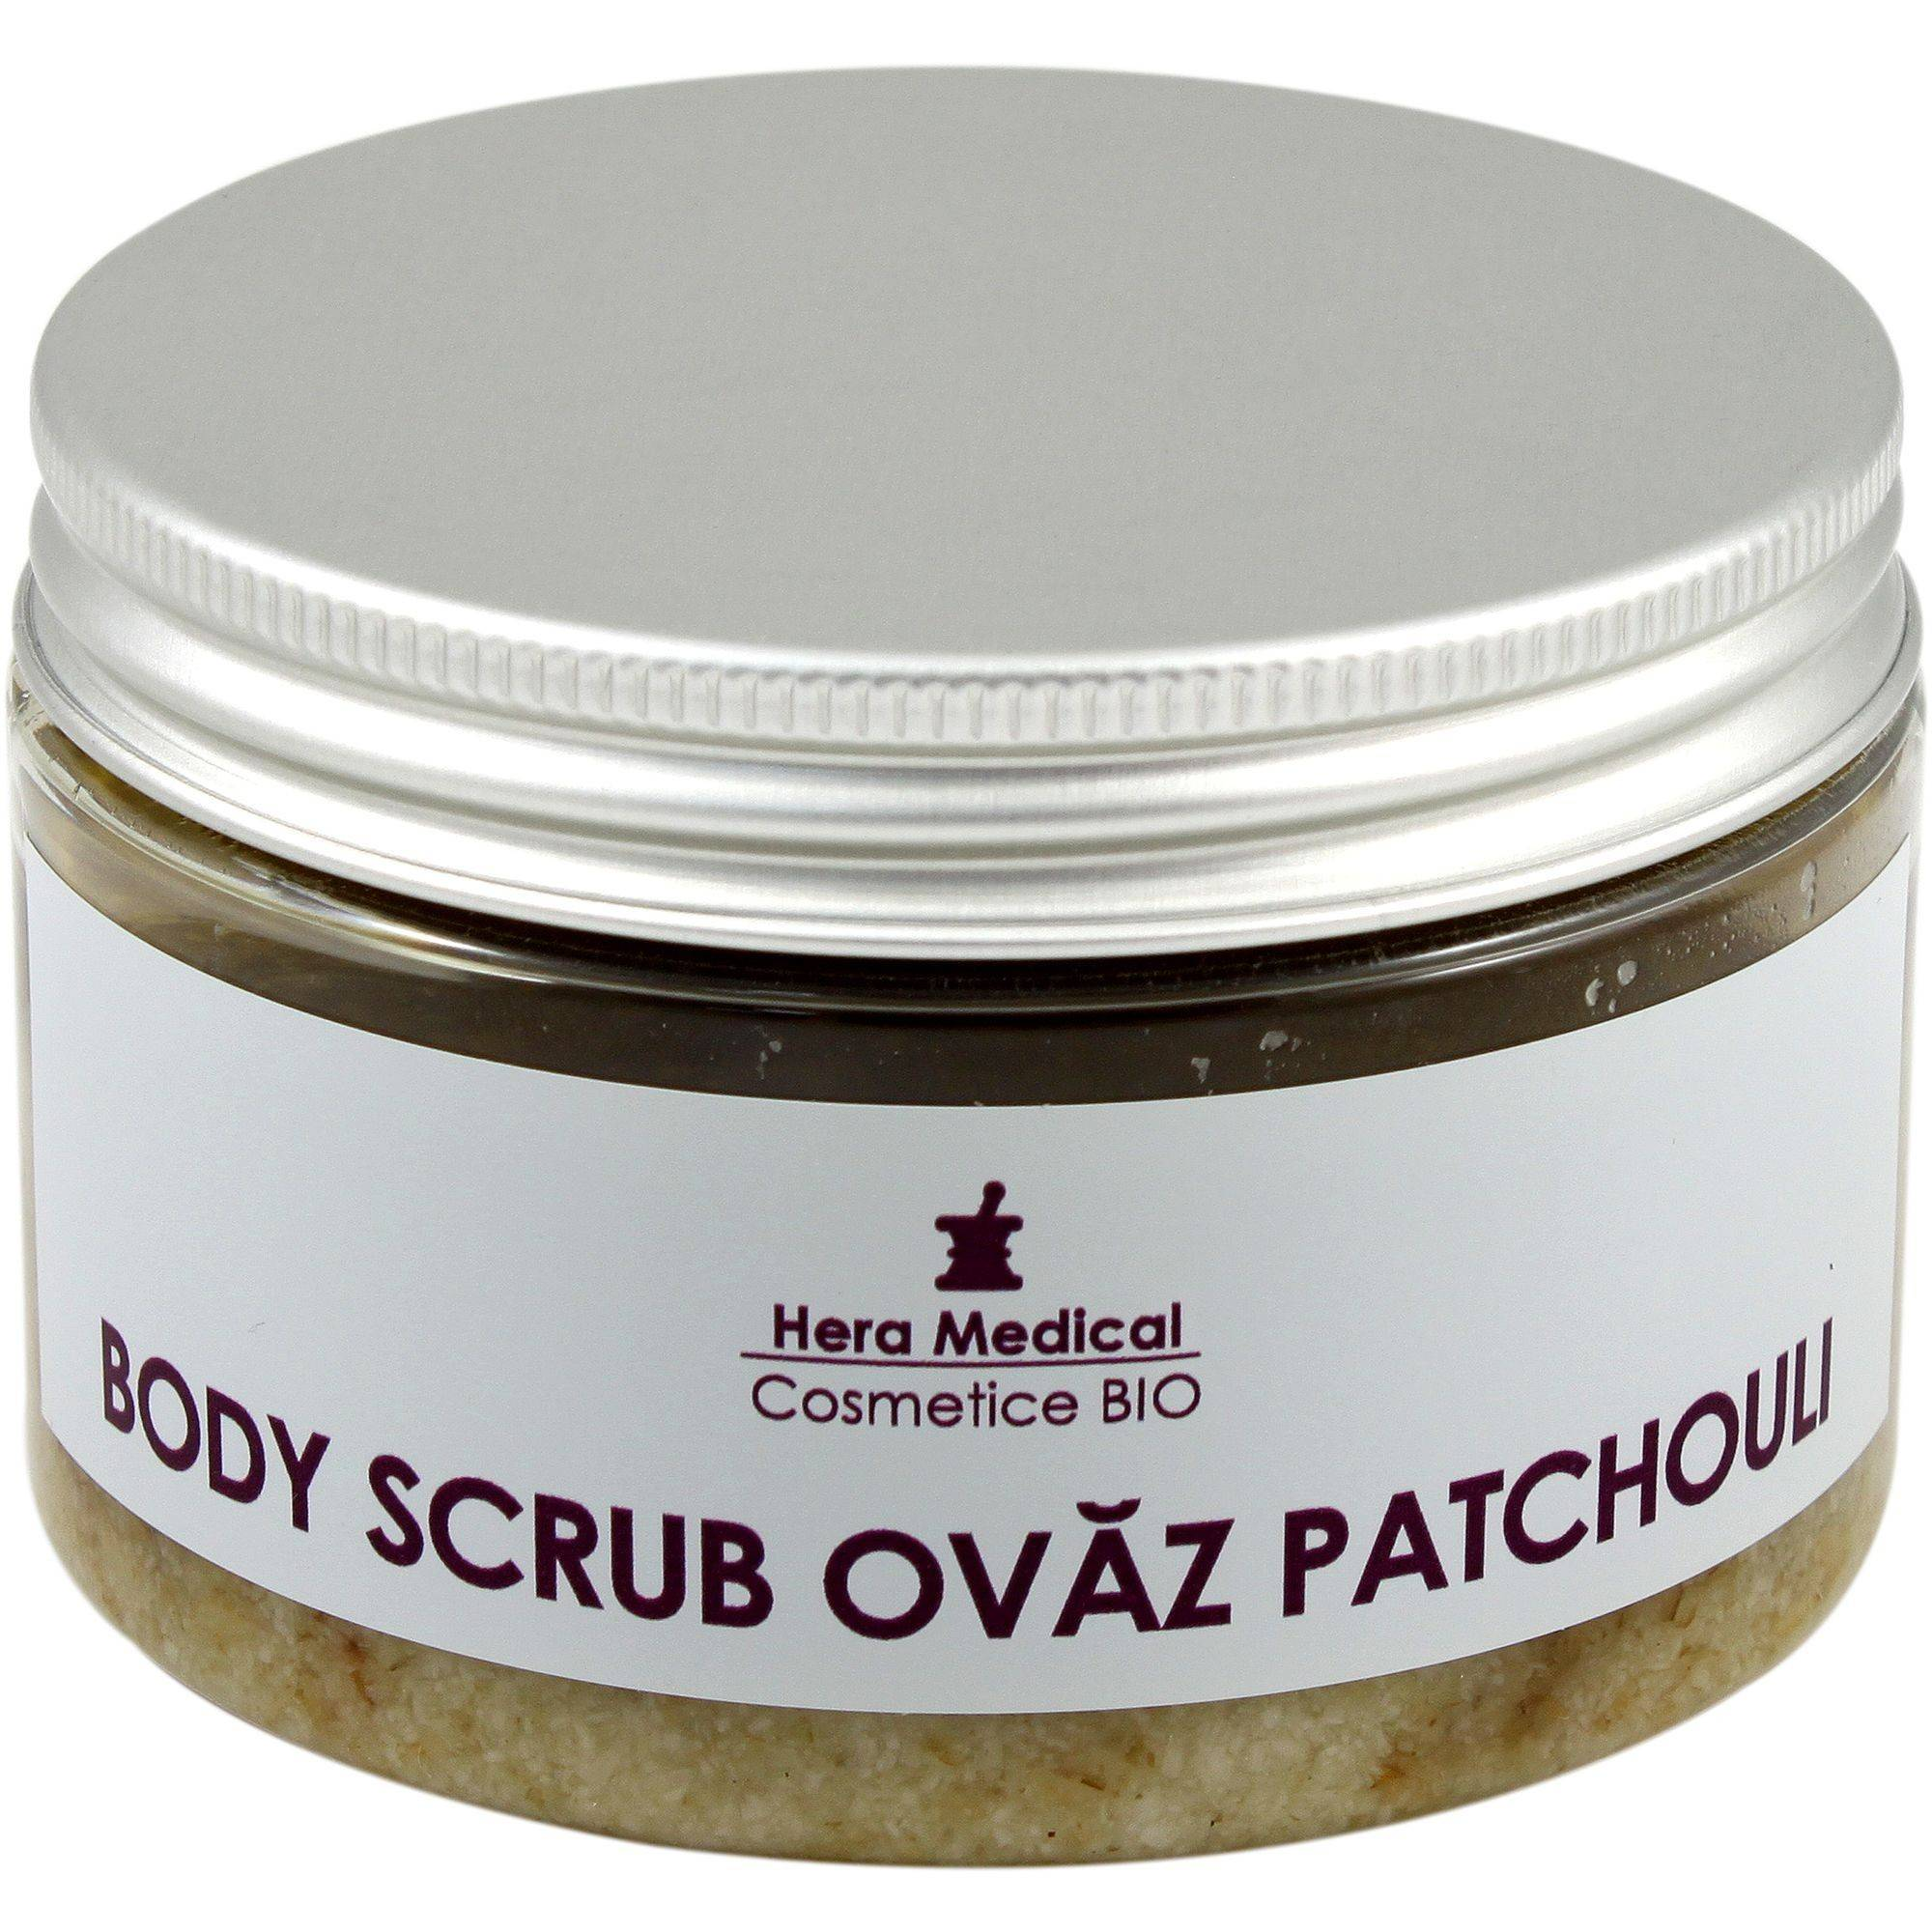 body scrub ovaz patchouli